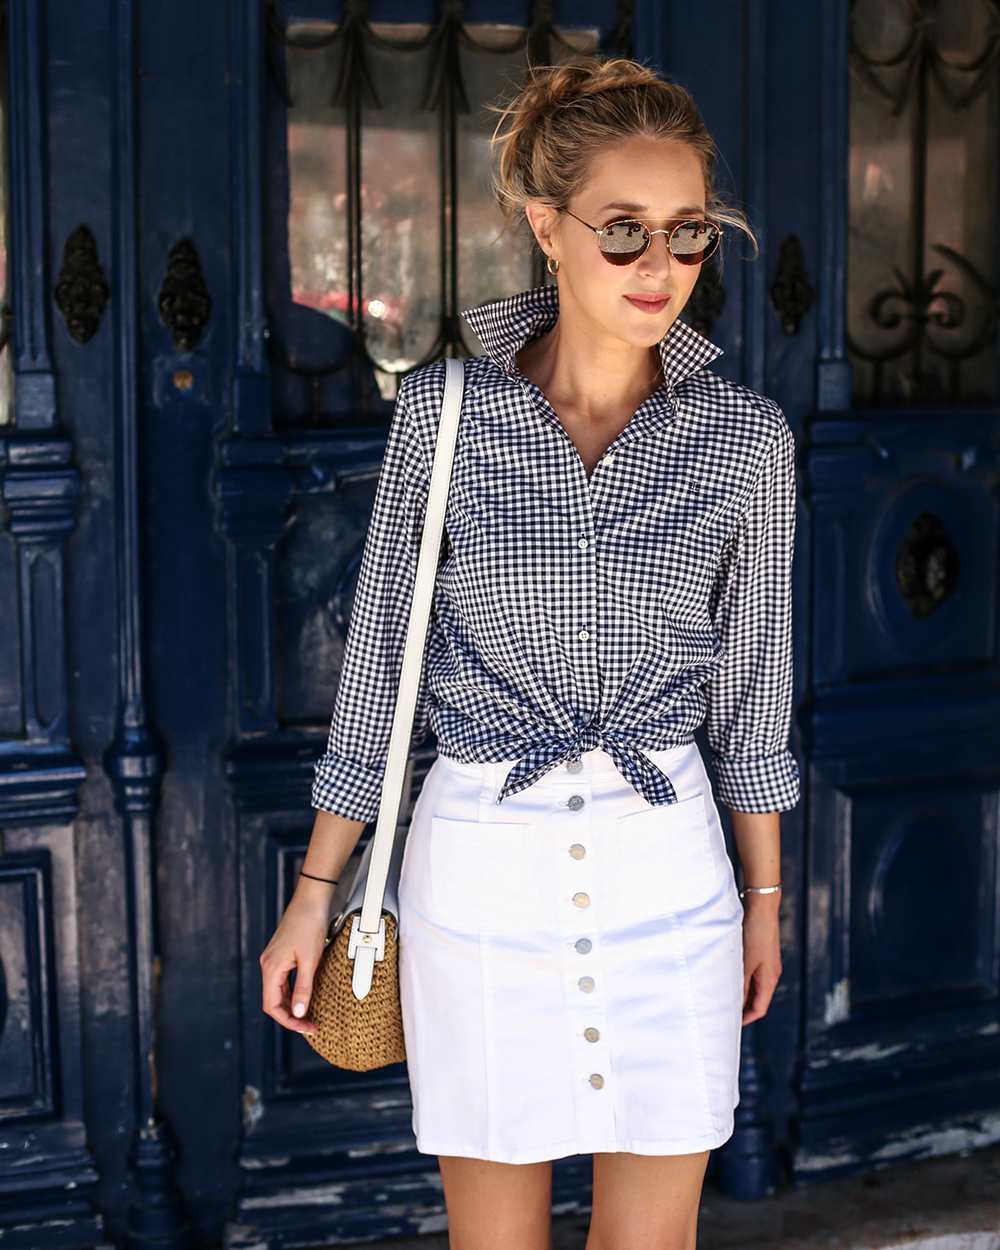 navy-white-gingham-shirt-tied-front-white-denim-button-front-mini-skirt-straw-white-leather-shoulder-cross-body-bag-fashion-style-travel-blog-26-680x850@2x